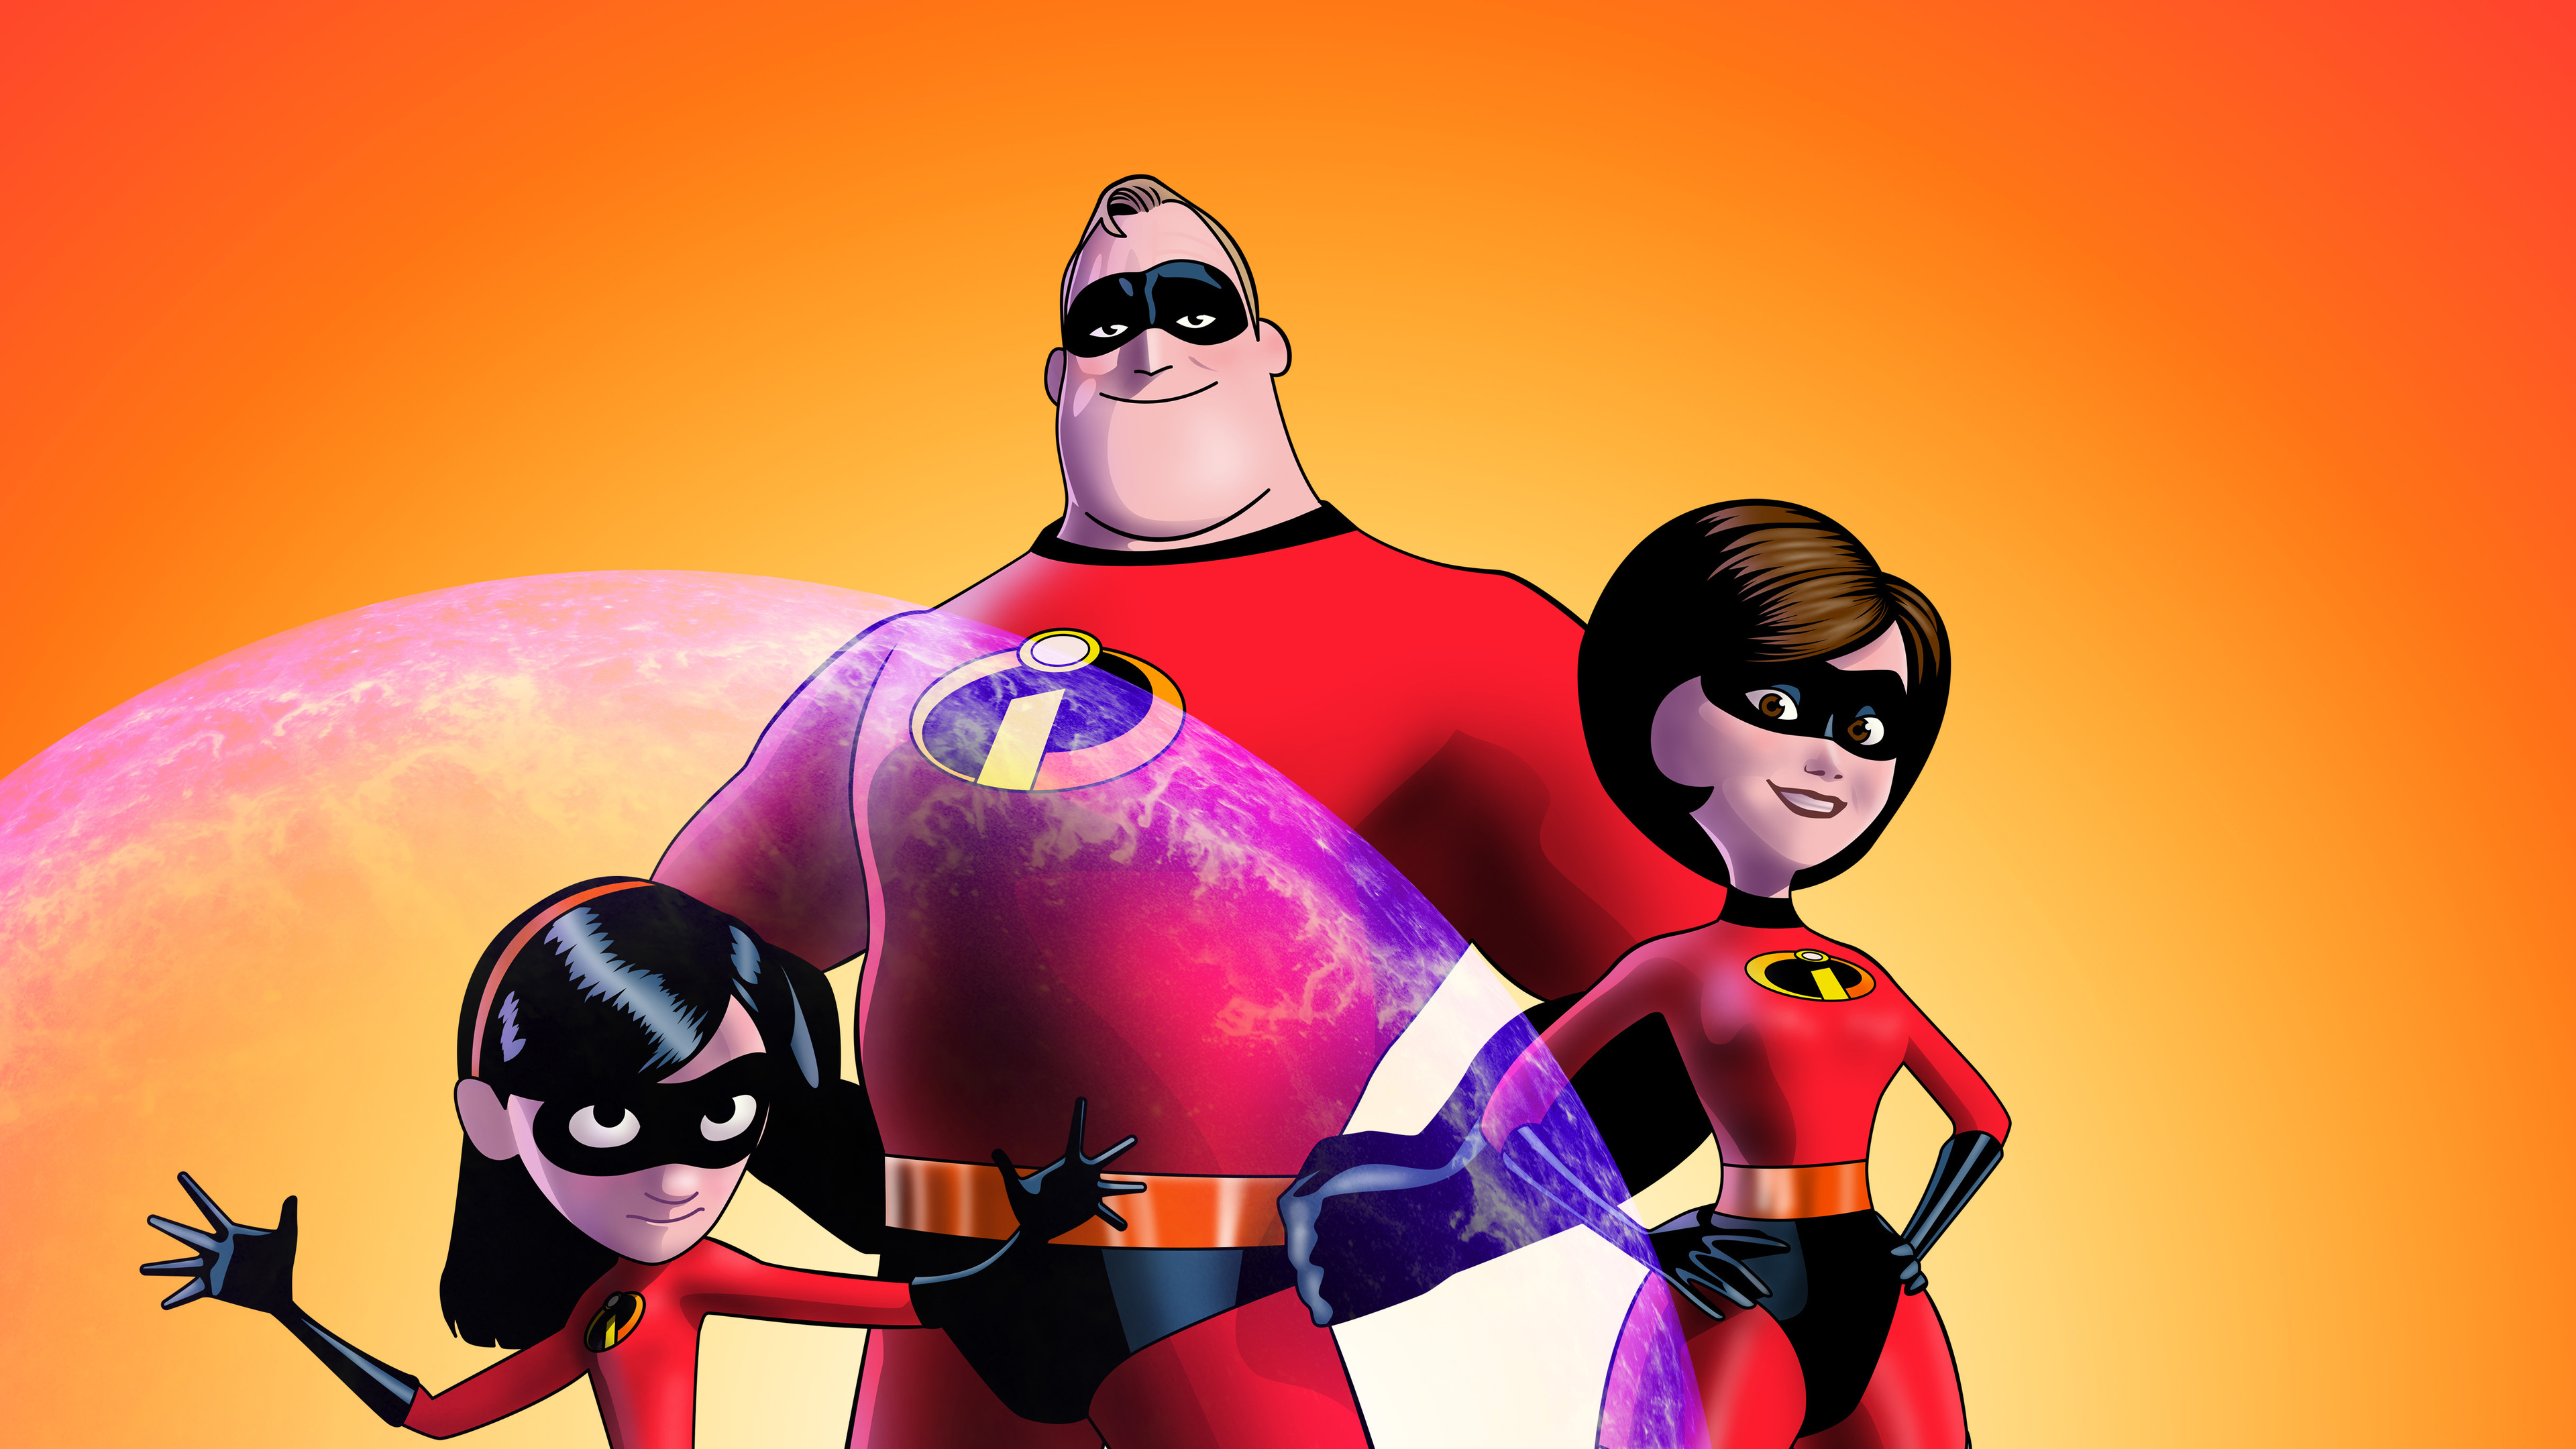 the-incredibles-2-5k-artwork-j4.jpg